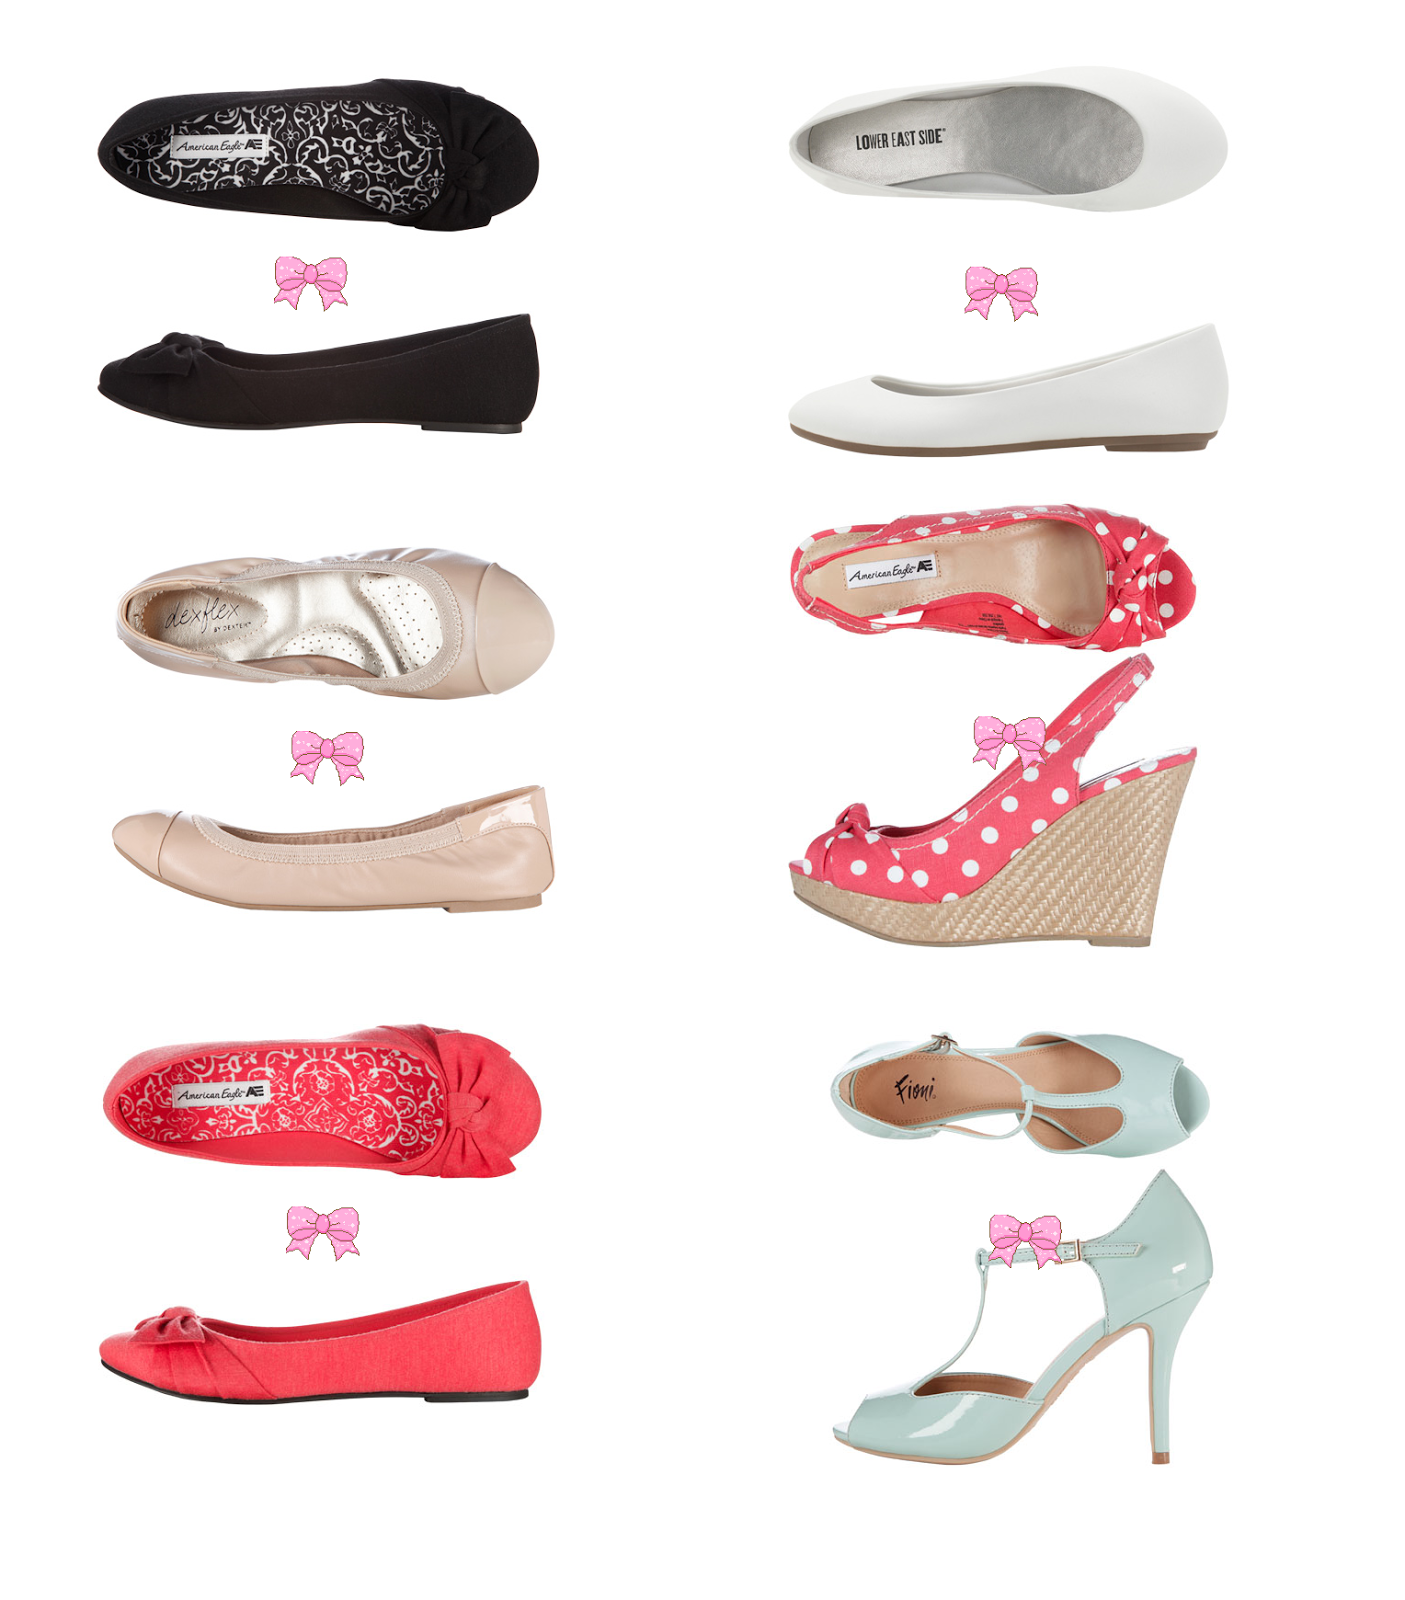 A girls guide to life ♡: Cute shoes for cheap ♡